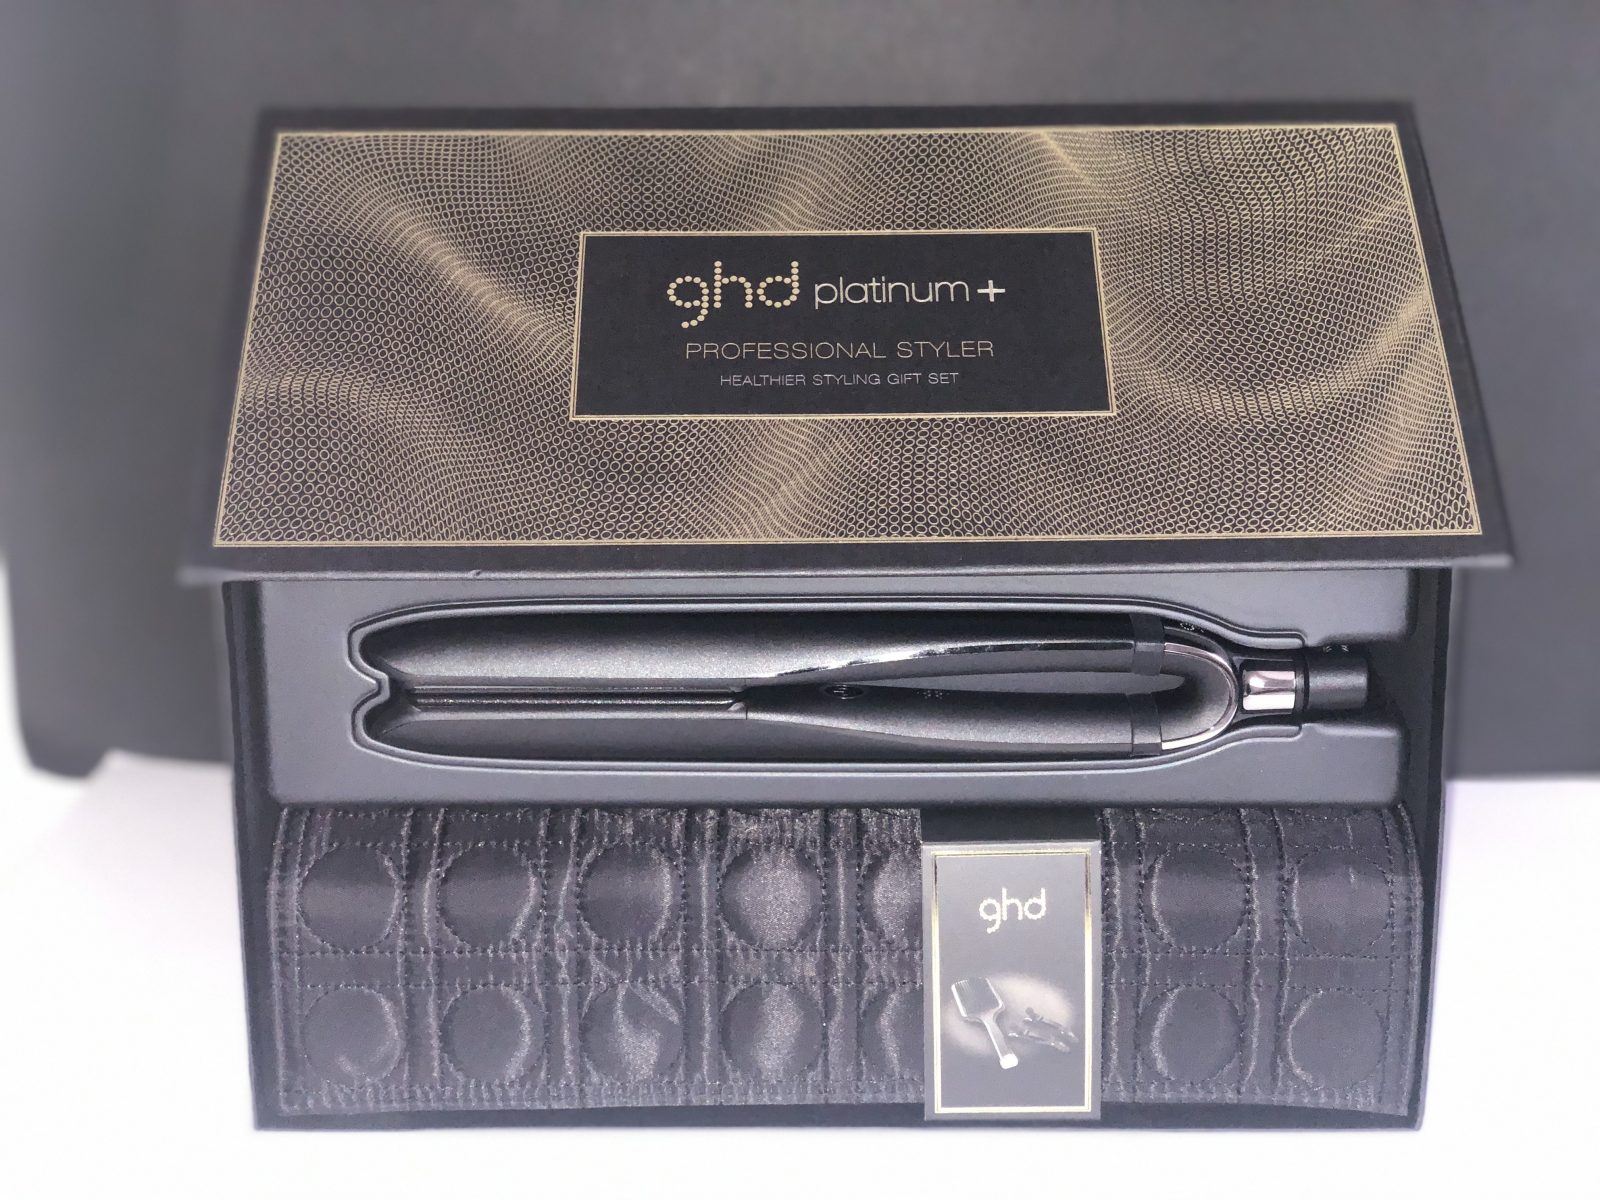 GHD Platinum + Gift Set